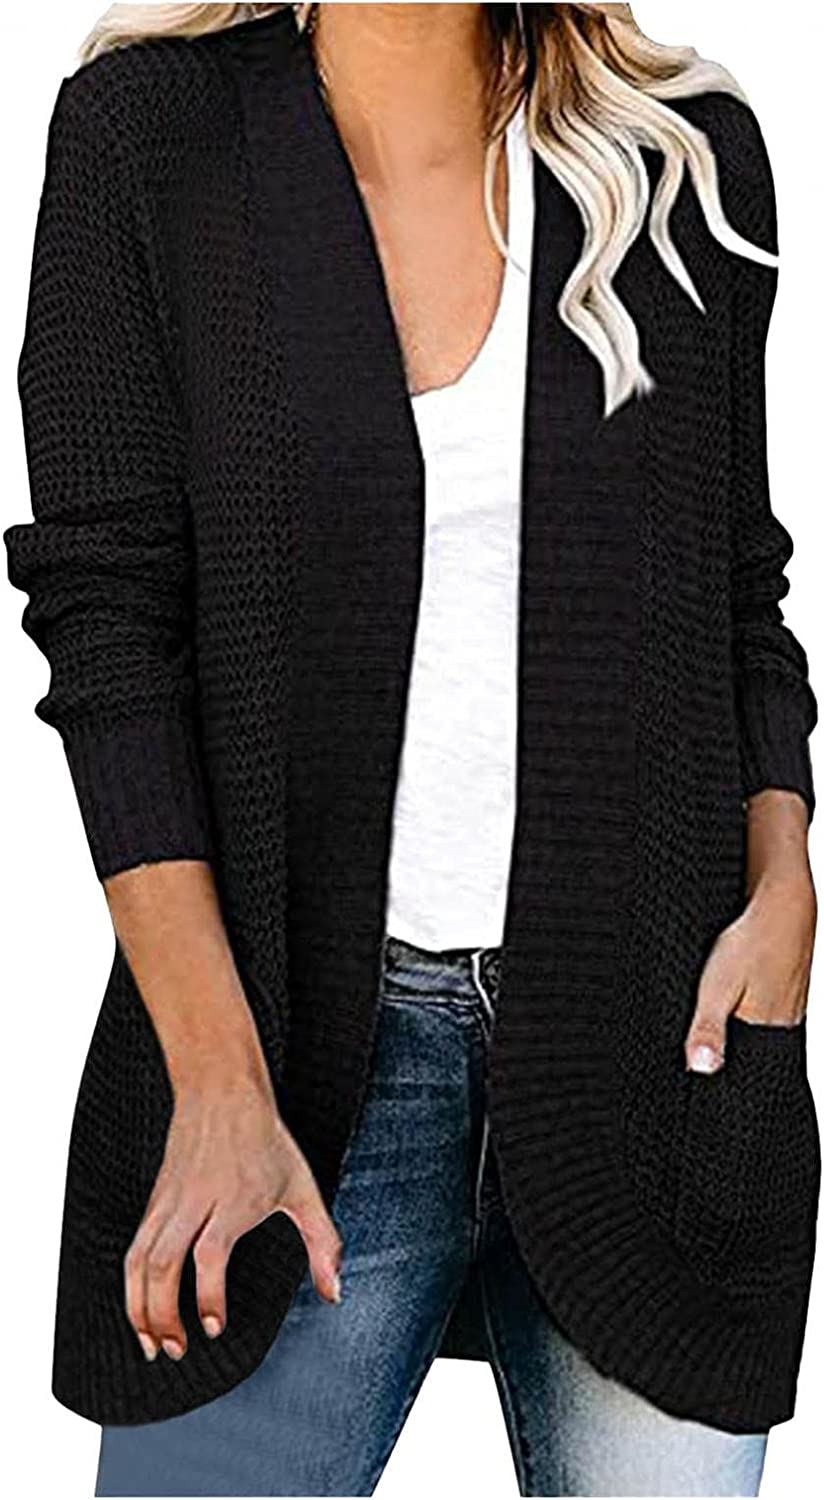 Women's Fall Fashion Long Sleeve Open Front Casual Lightweight Soft Knit Cardigan Sweater Coat Outerwear with Pockets